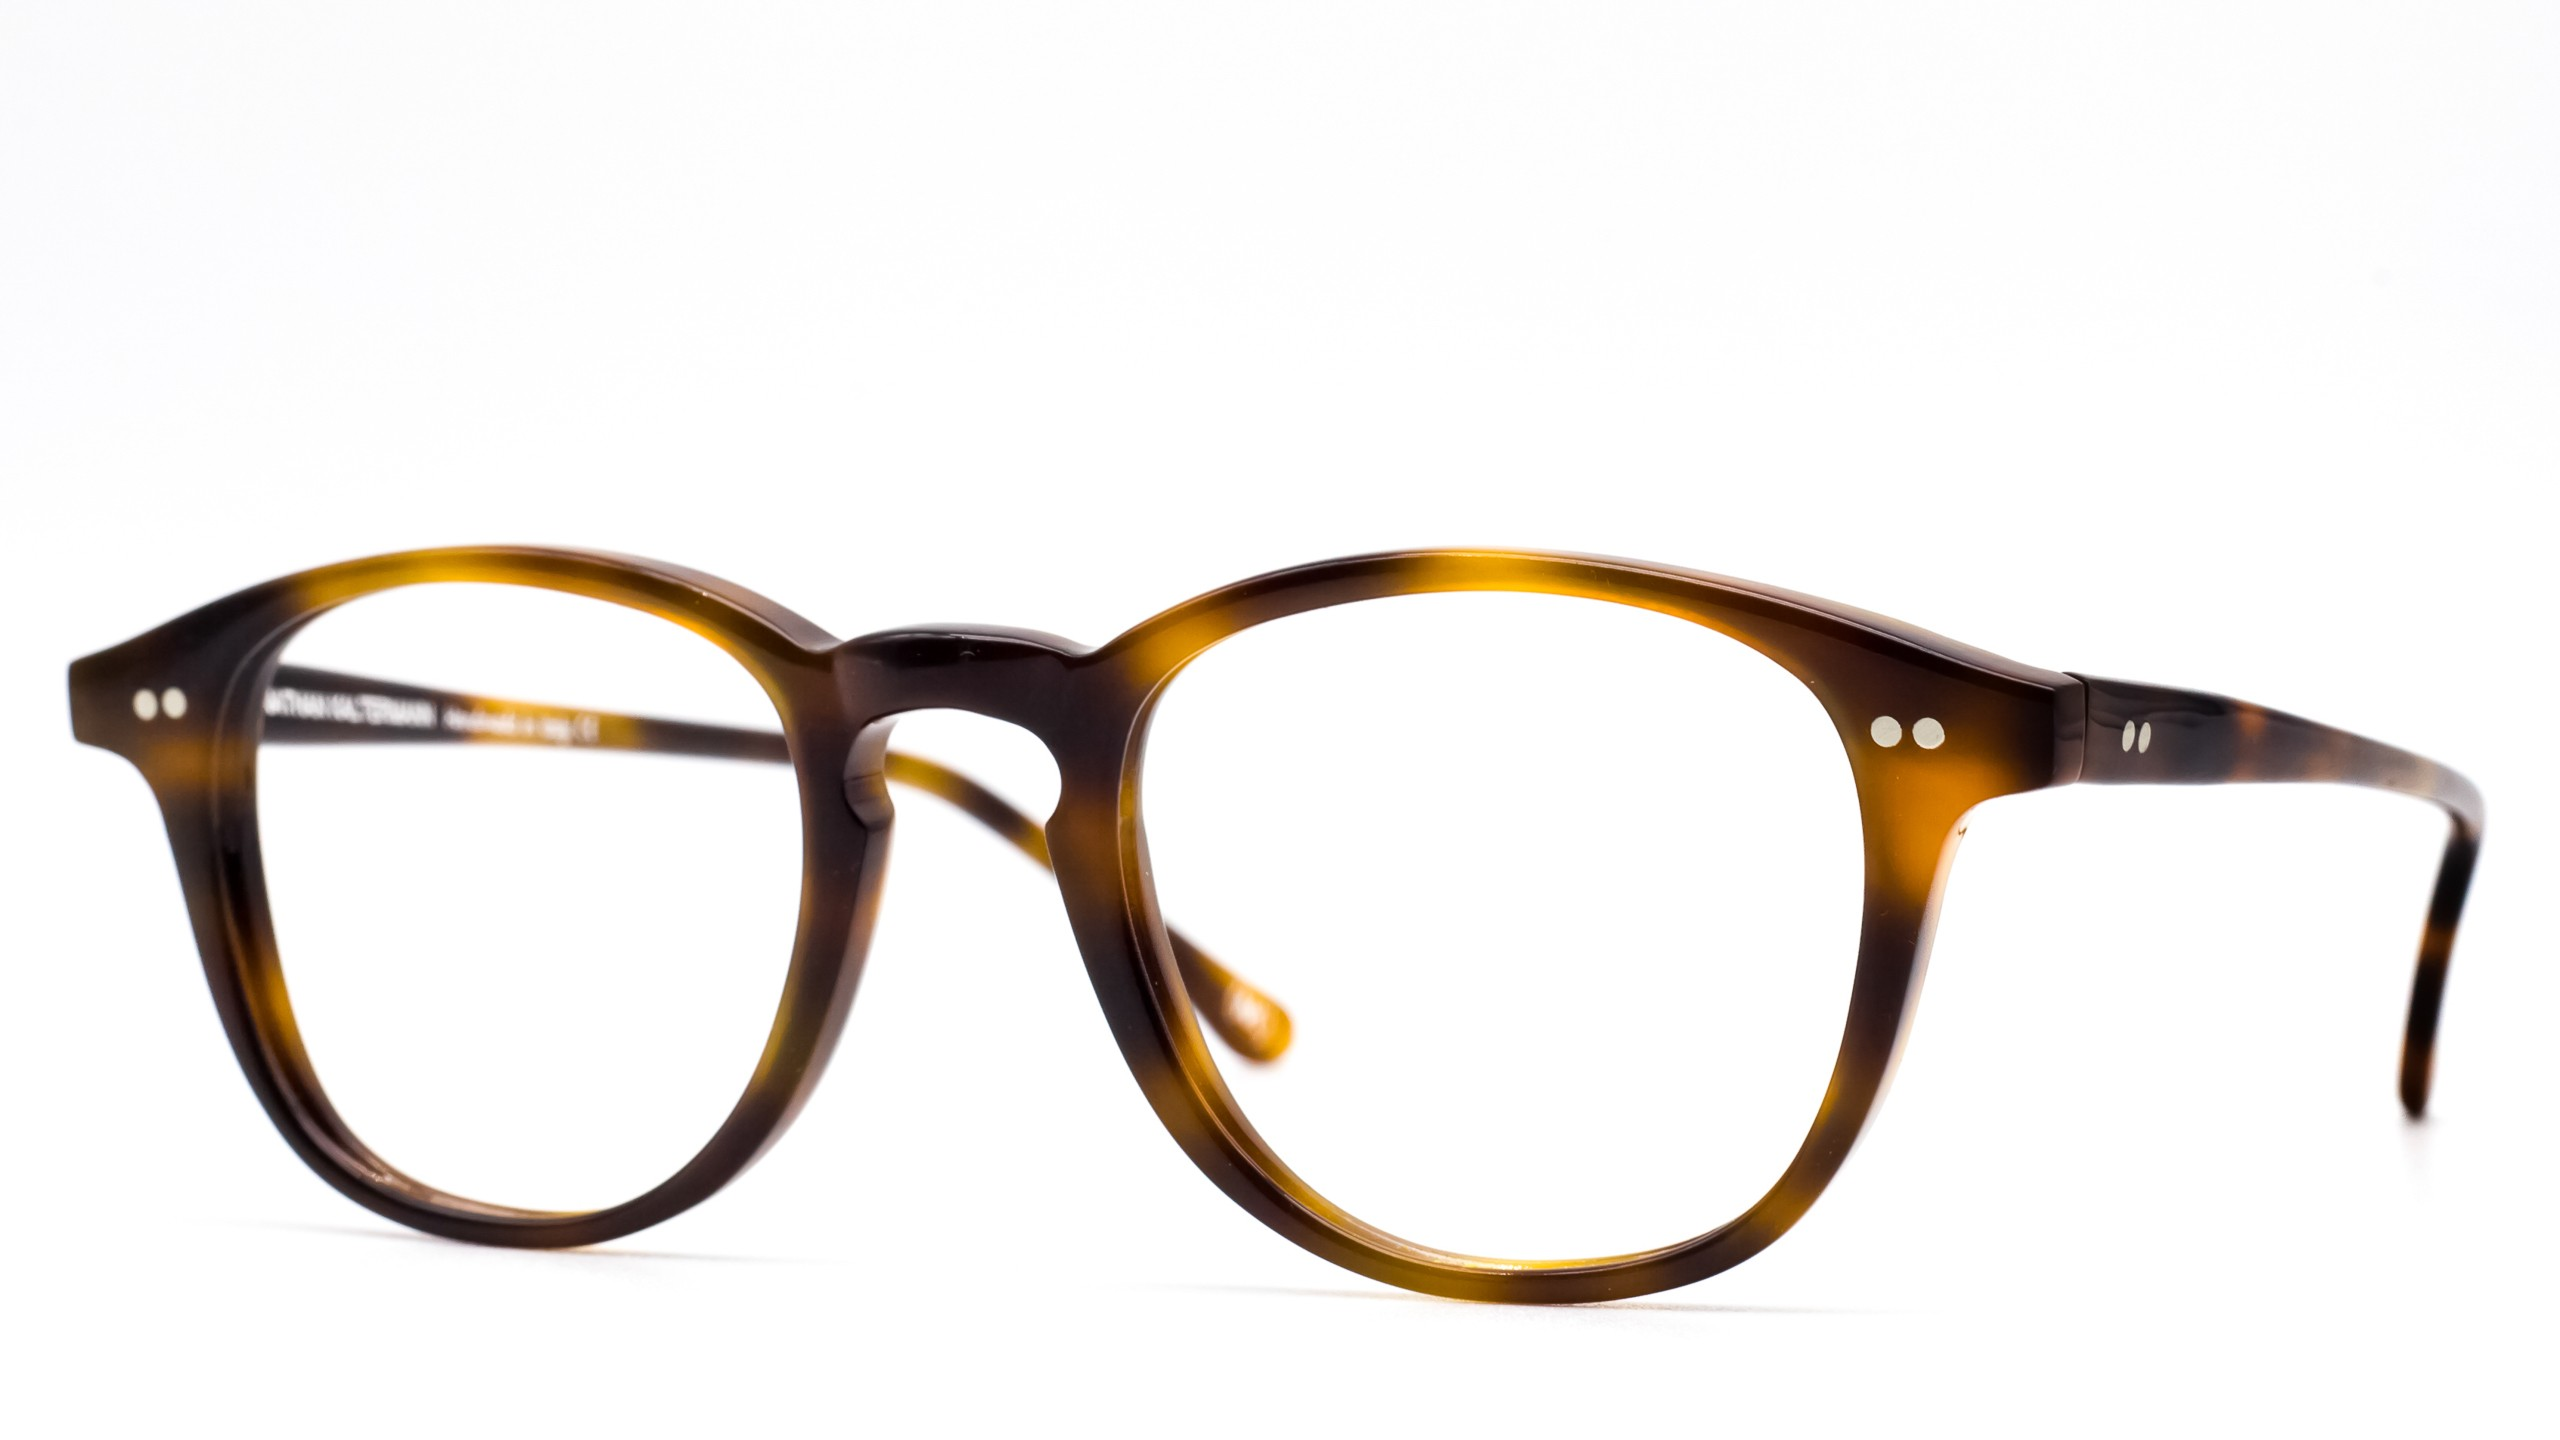 eyeglasses-Nathan-Kaltermann-made-in-Italy-Giglio-C03-Vista2